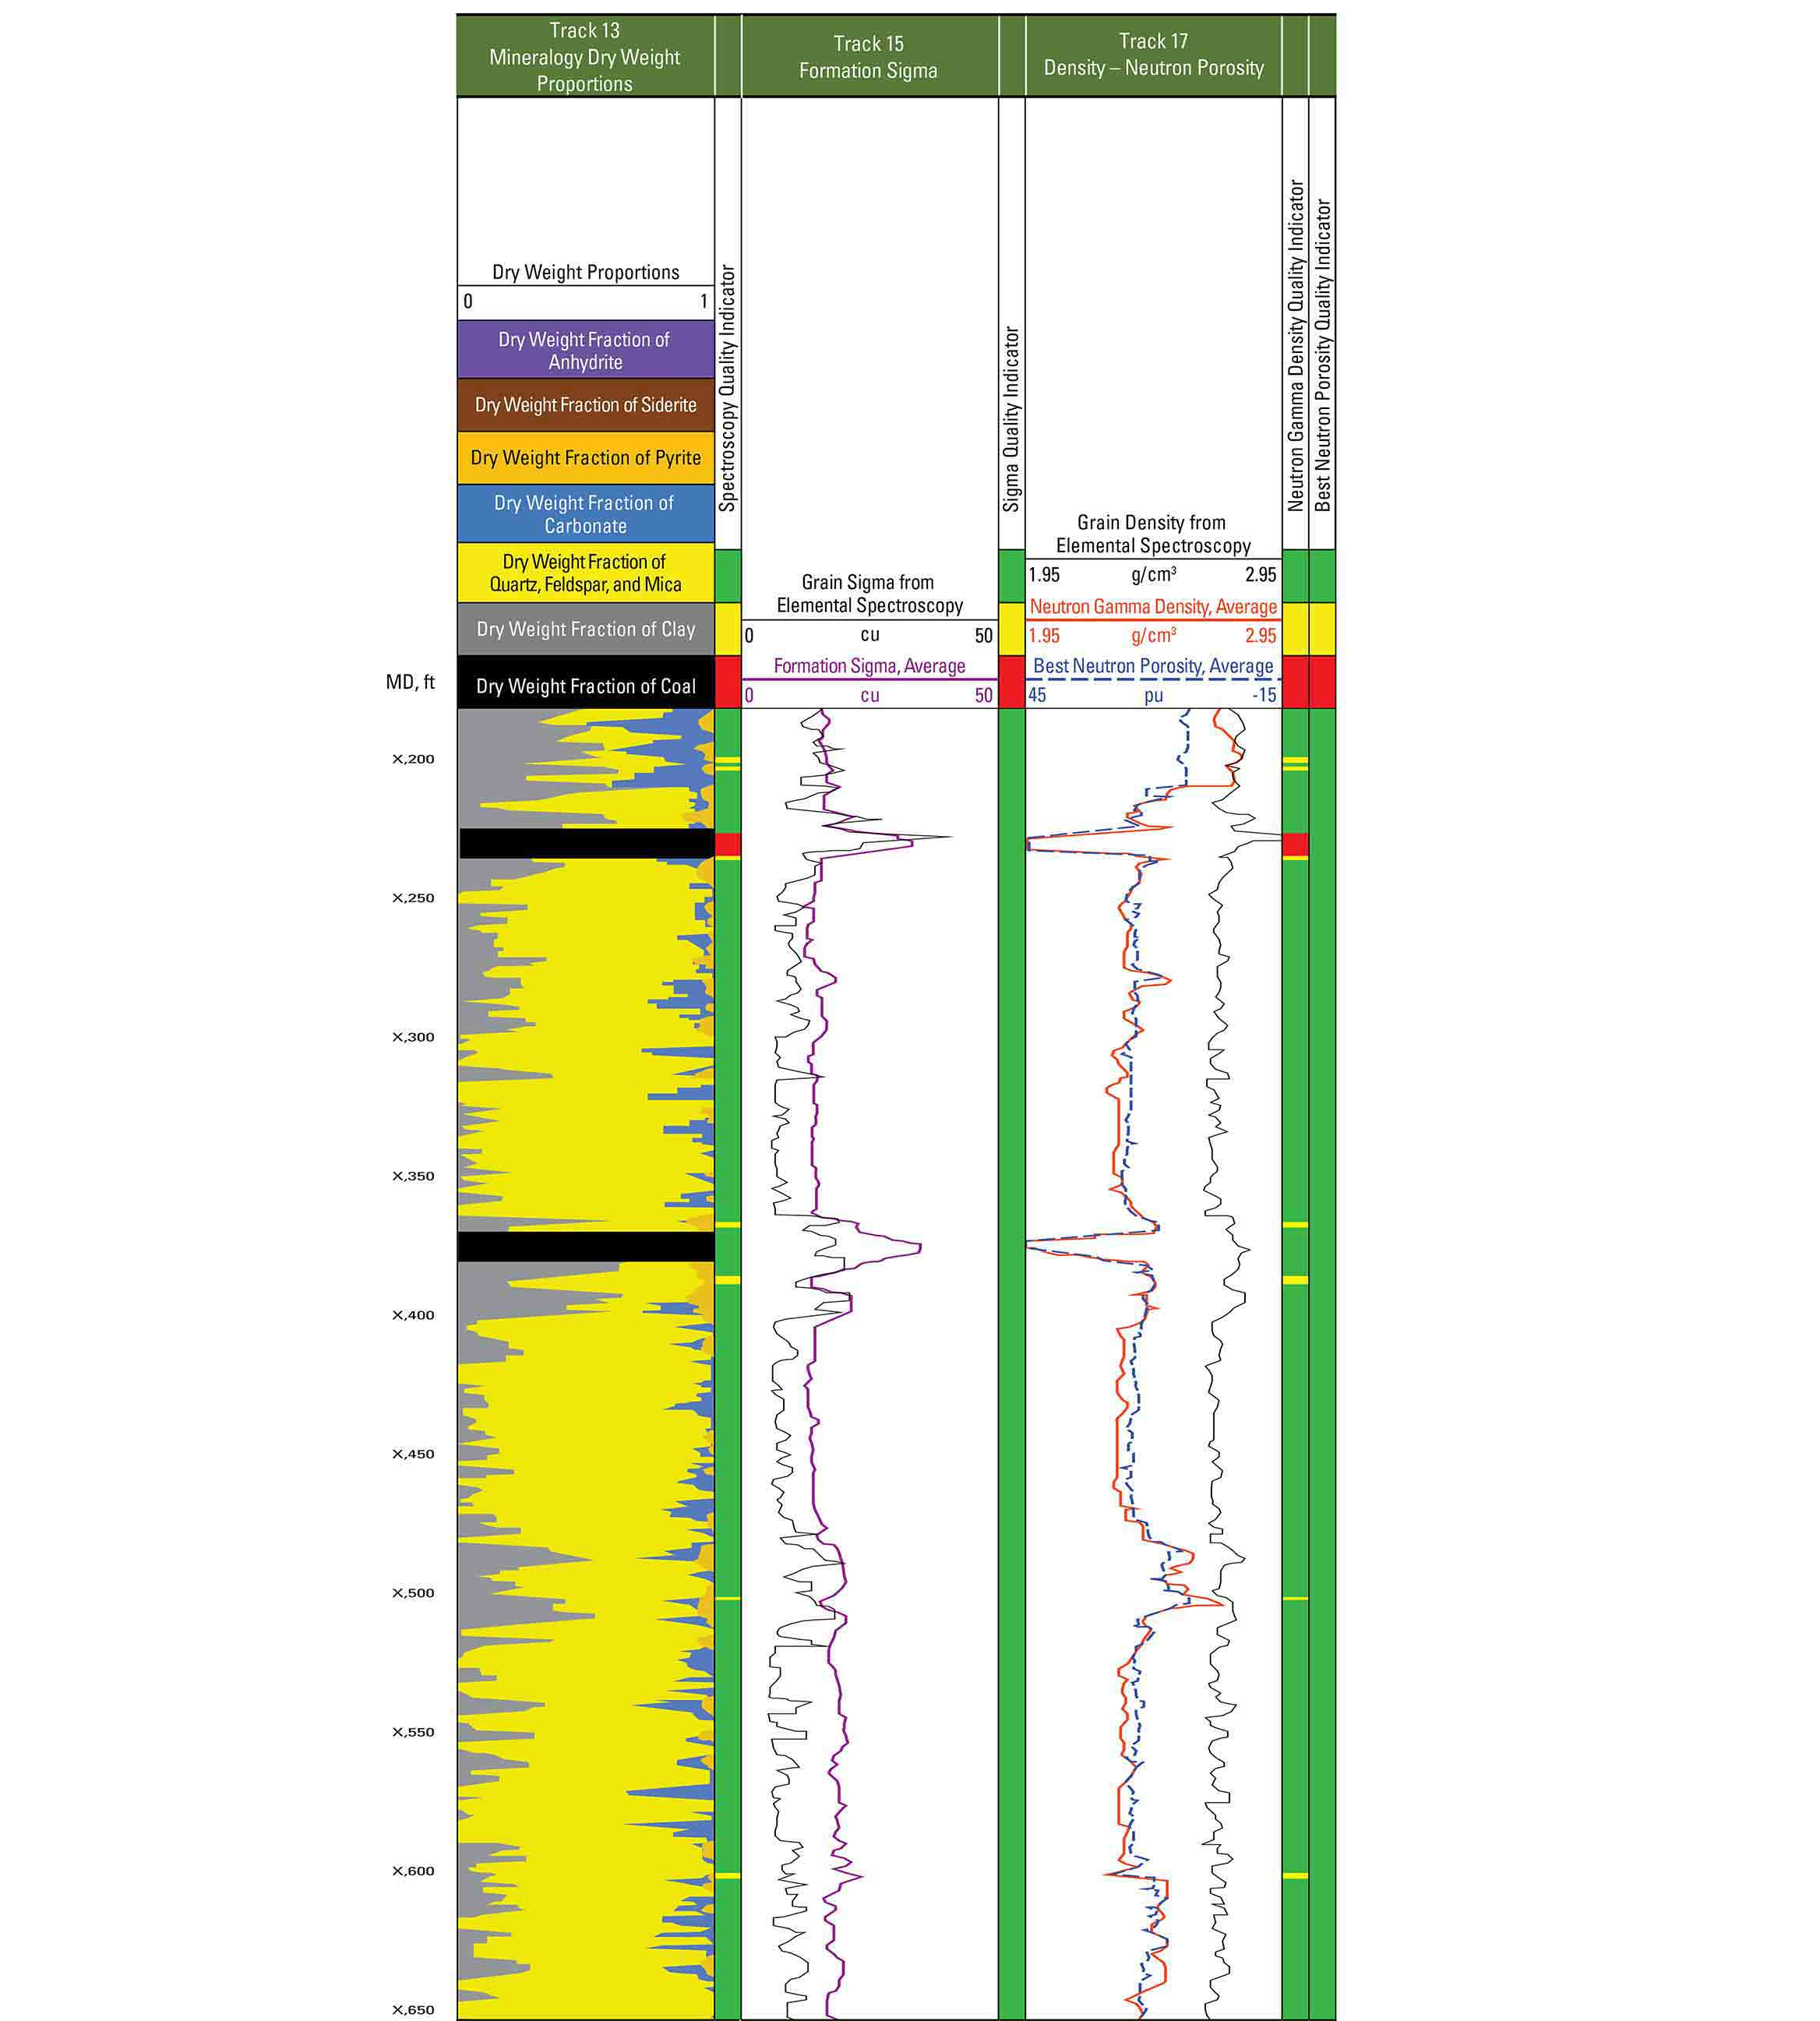 A log from the NeoScope service showing various mineralogy, formation sigma, and density-neutron porosity tracks